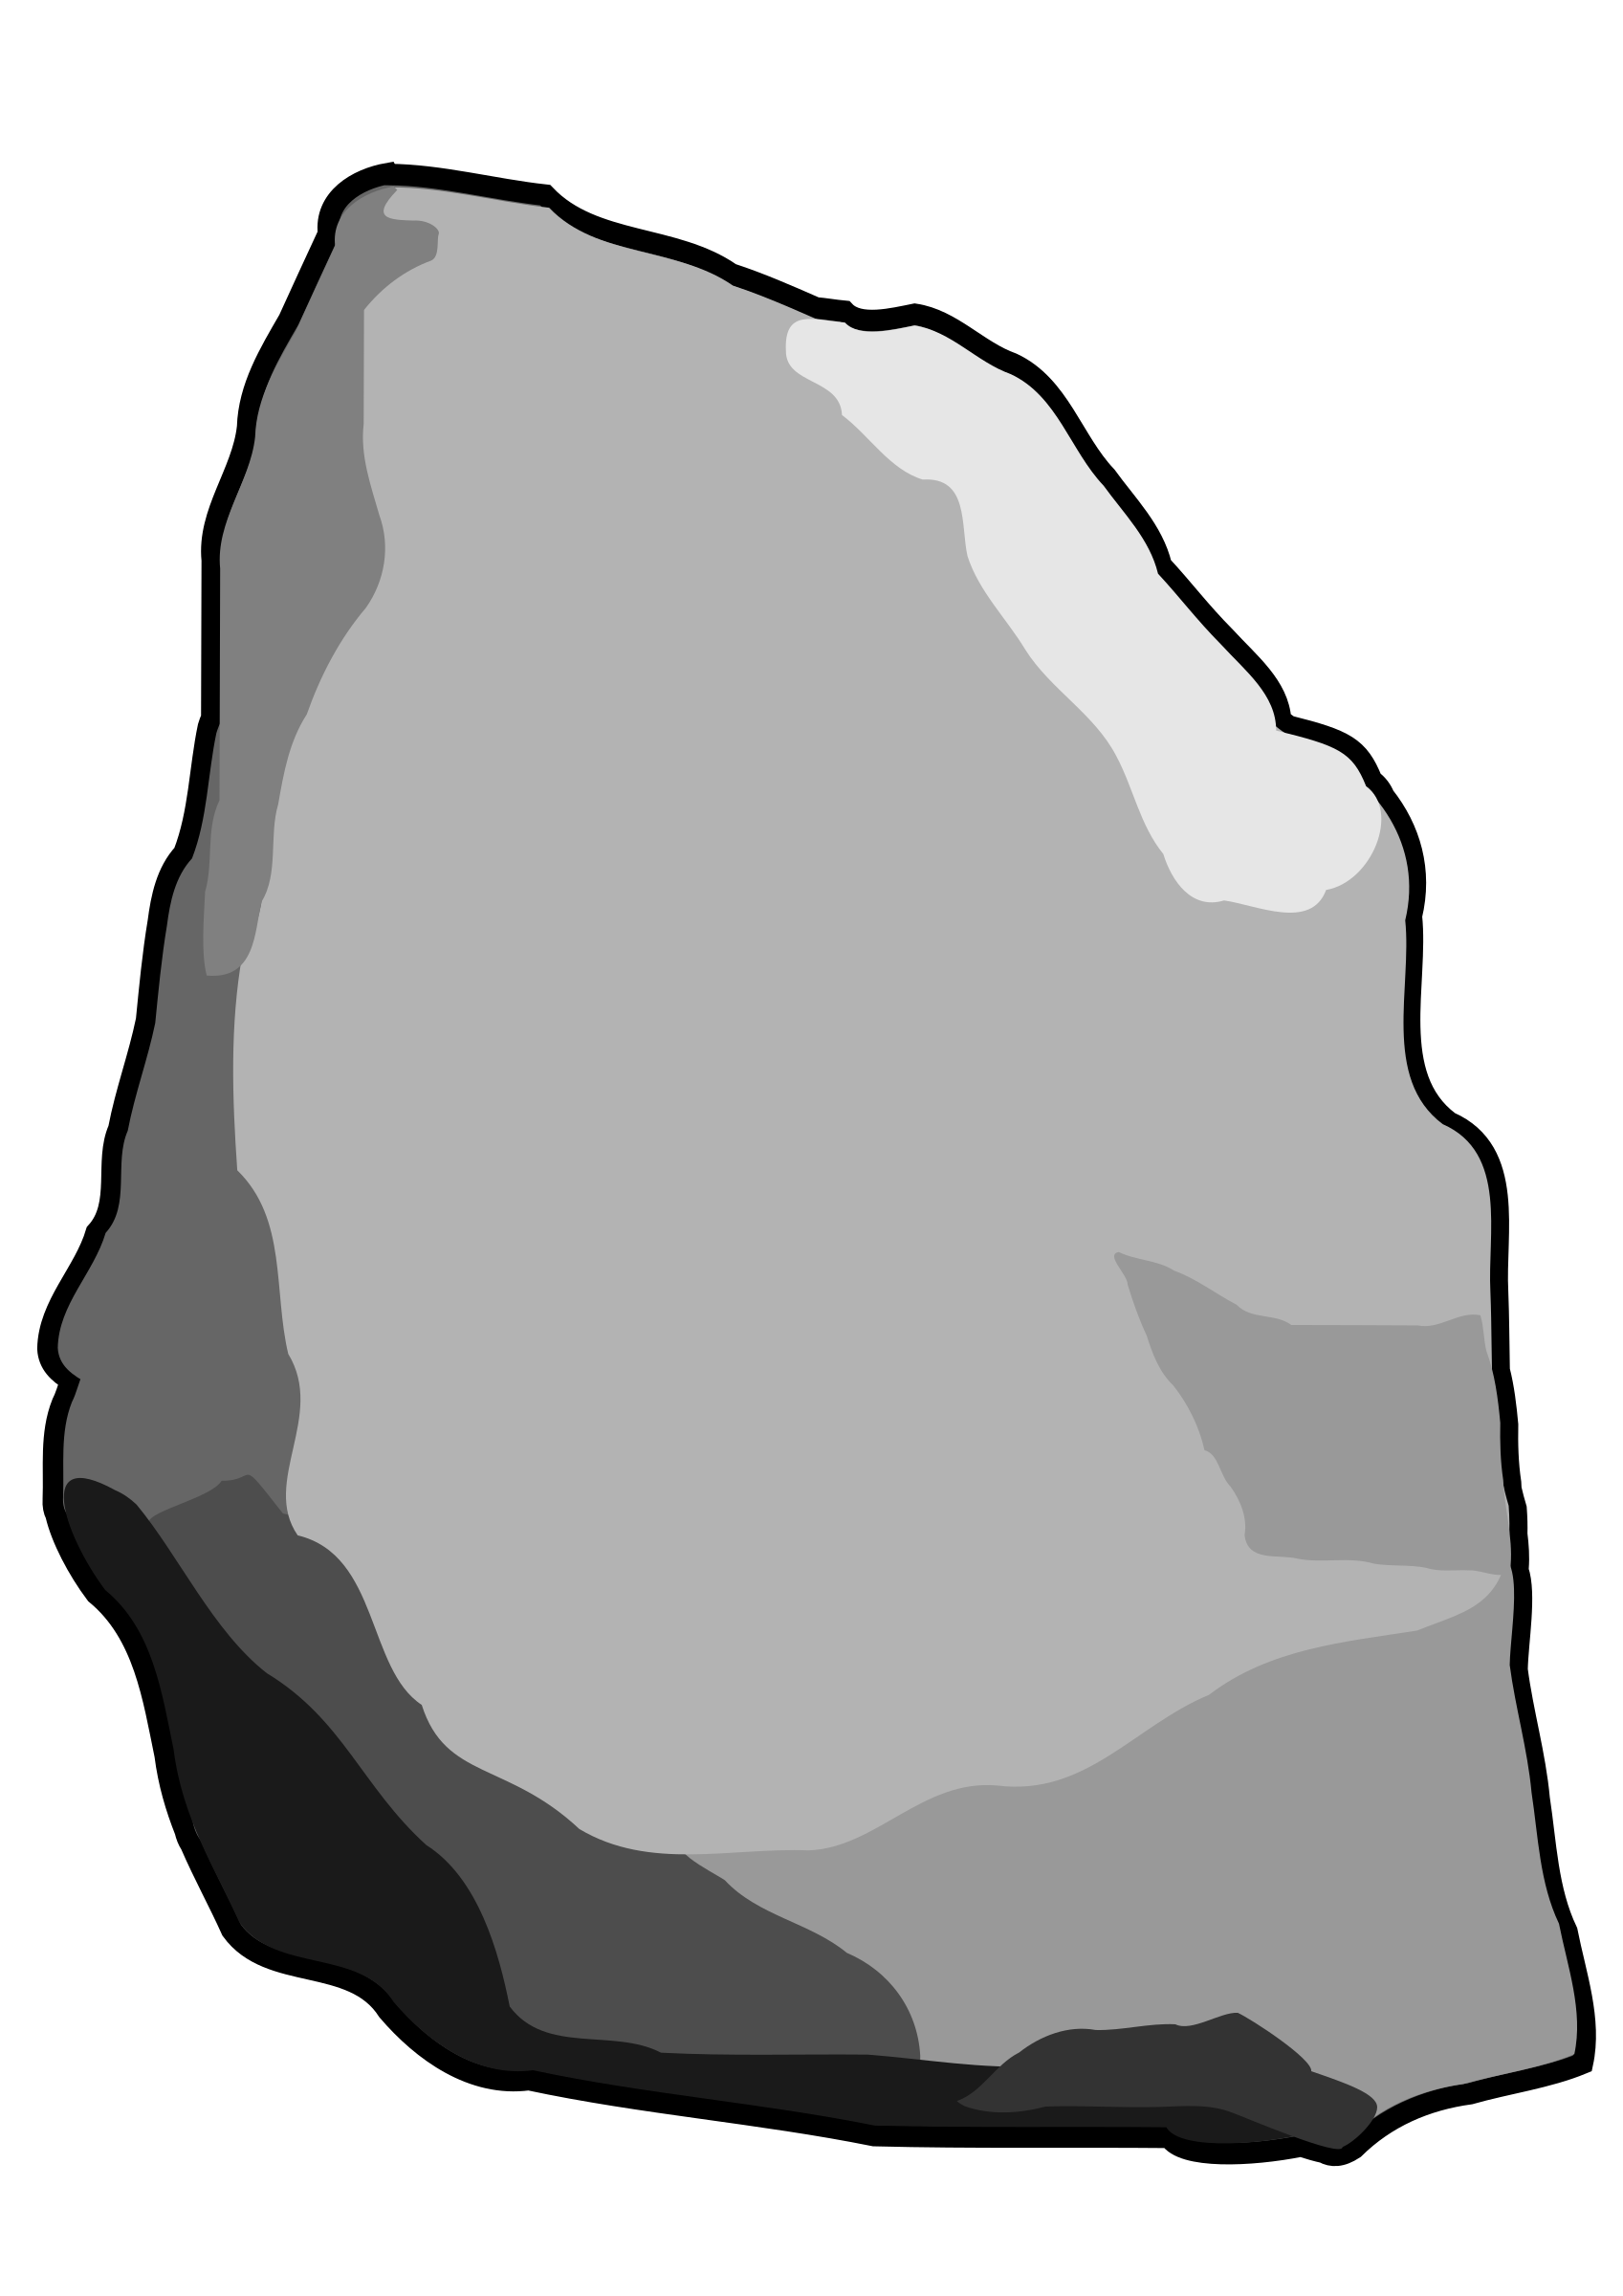 Stone clipart #13, Download drawings